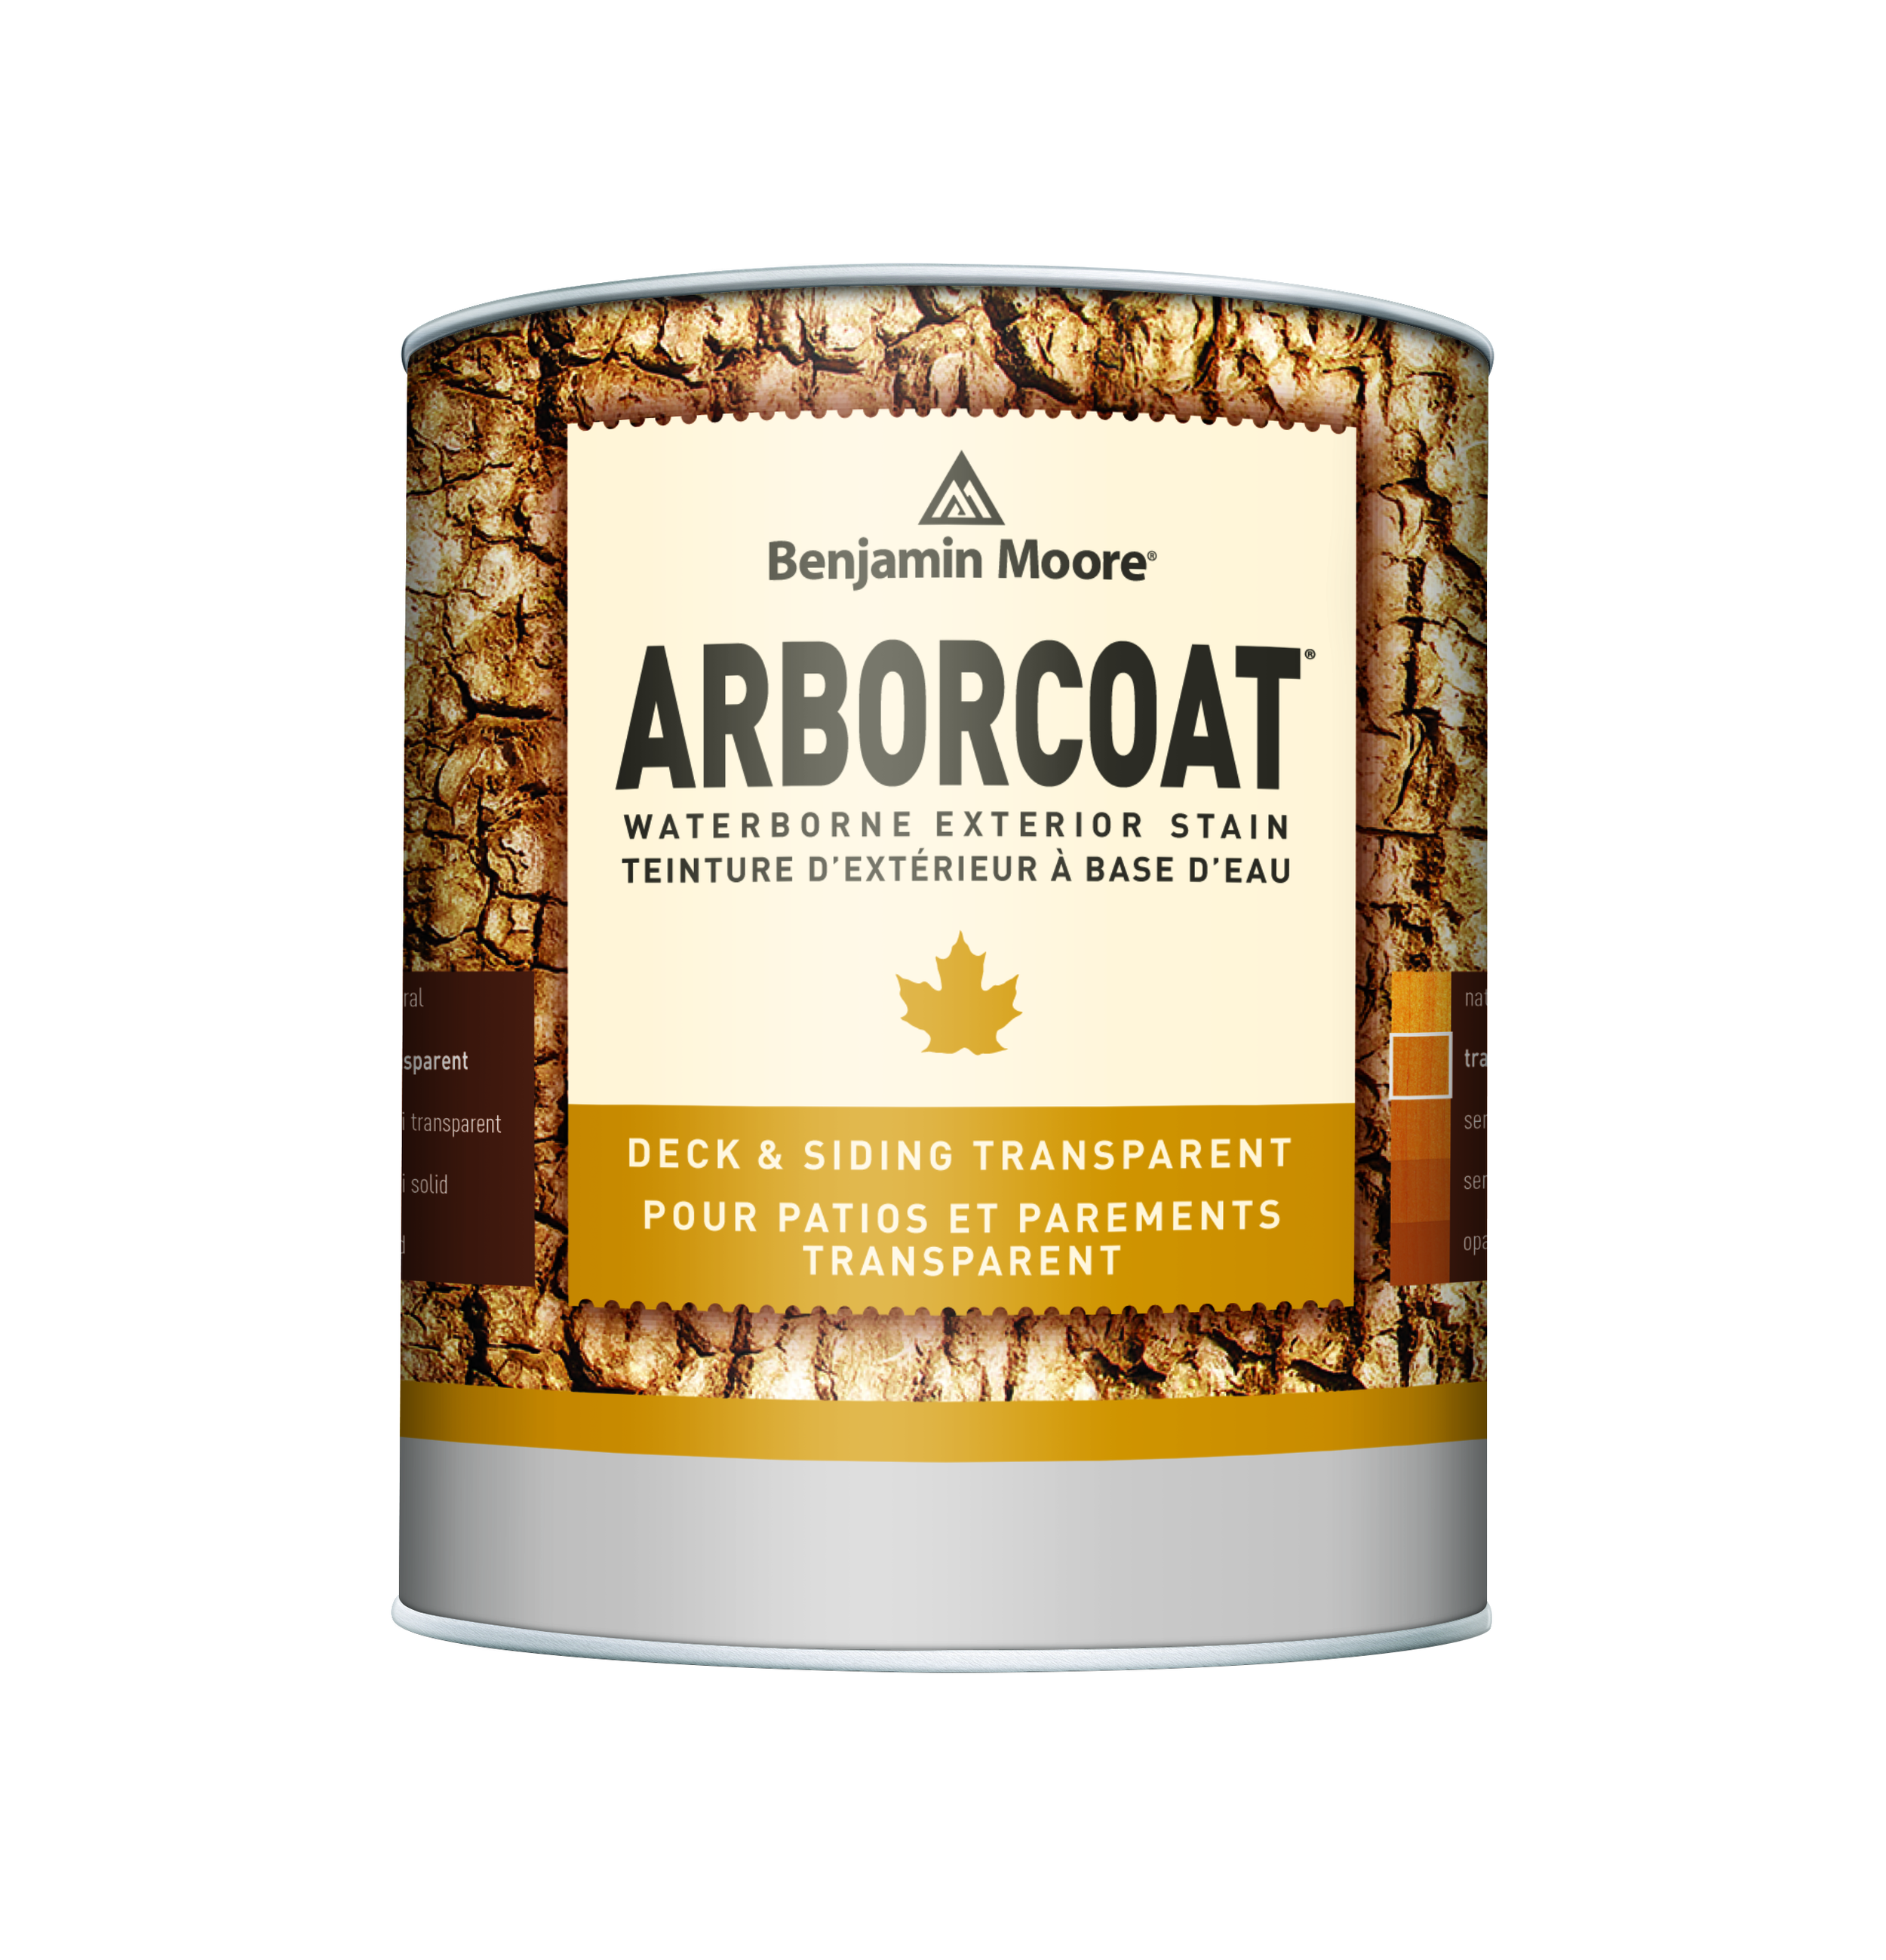 ARBORCOAT® Premium Exterior Stain - ARBORCOAT Premium Exterior Stains offer a variety of opacities in an array of captivating colors that let you express your own unique style. These finishes are designed to enhance the appearance of your deck, siding, or outdoor wood furniture with outstanding color retention. All ARBORCOAT finishes are easy to apply and offer superior protection while enriching the texture and grain of exterior wood surfaces.